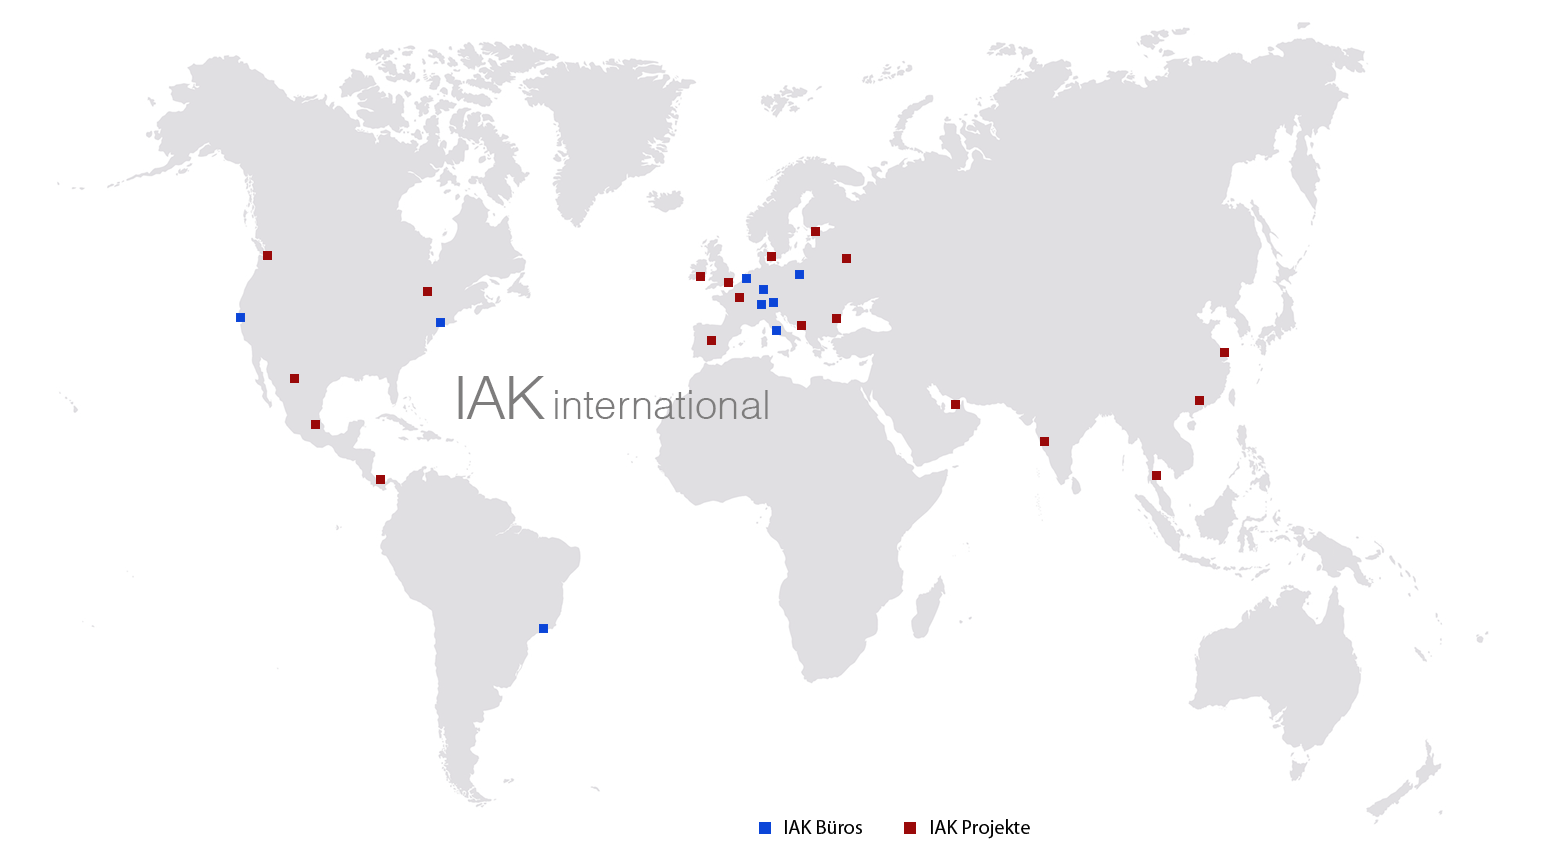 IAK International Weltkarte